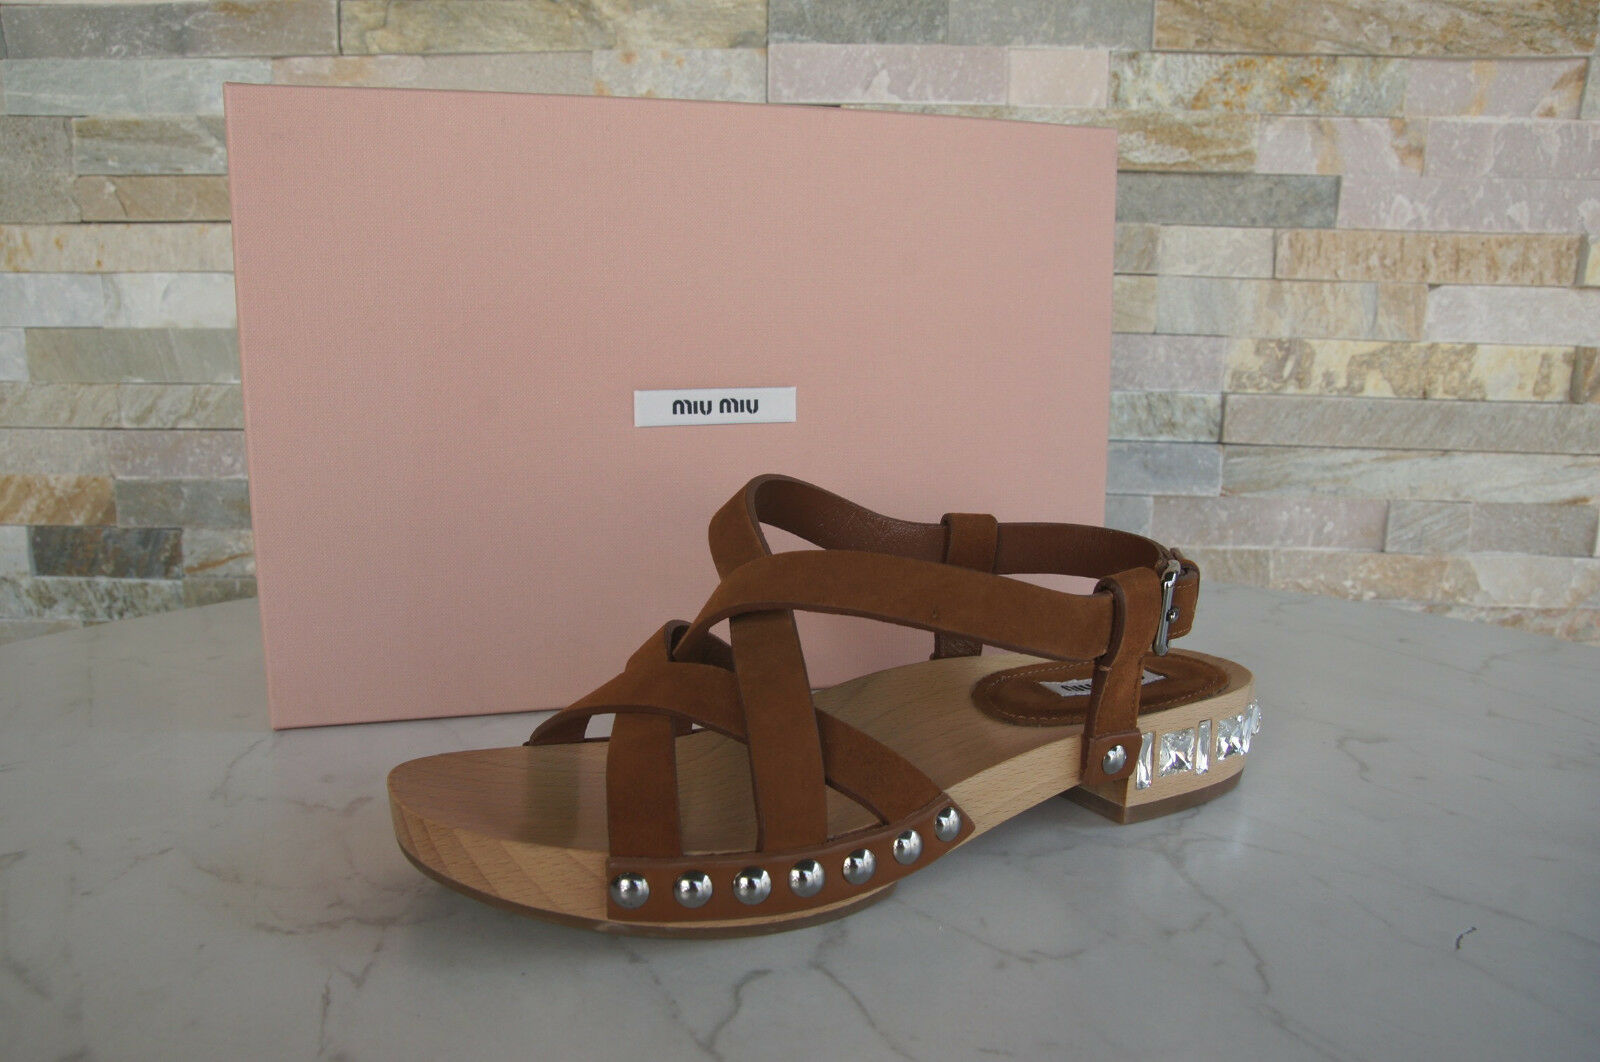 Miu Miu by Prada Size 38 Sandals Sneakers Wood shoes Brown New Previously